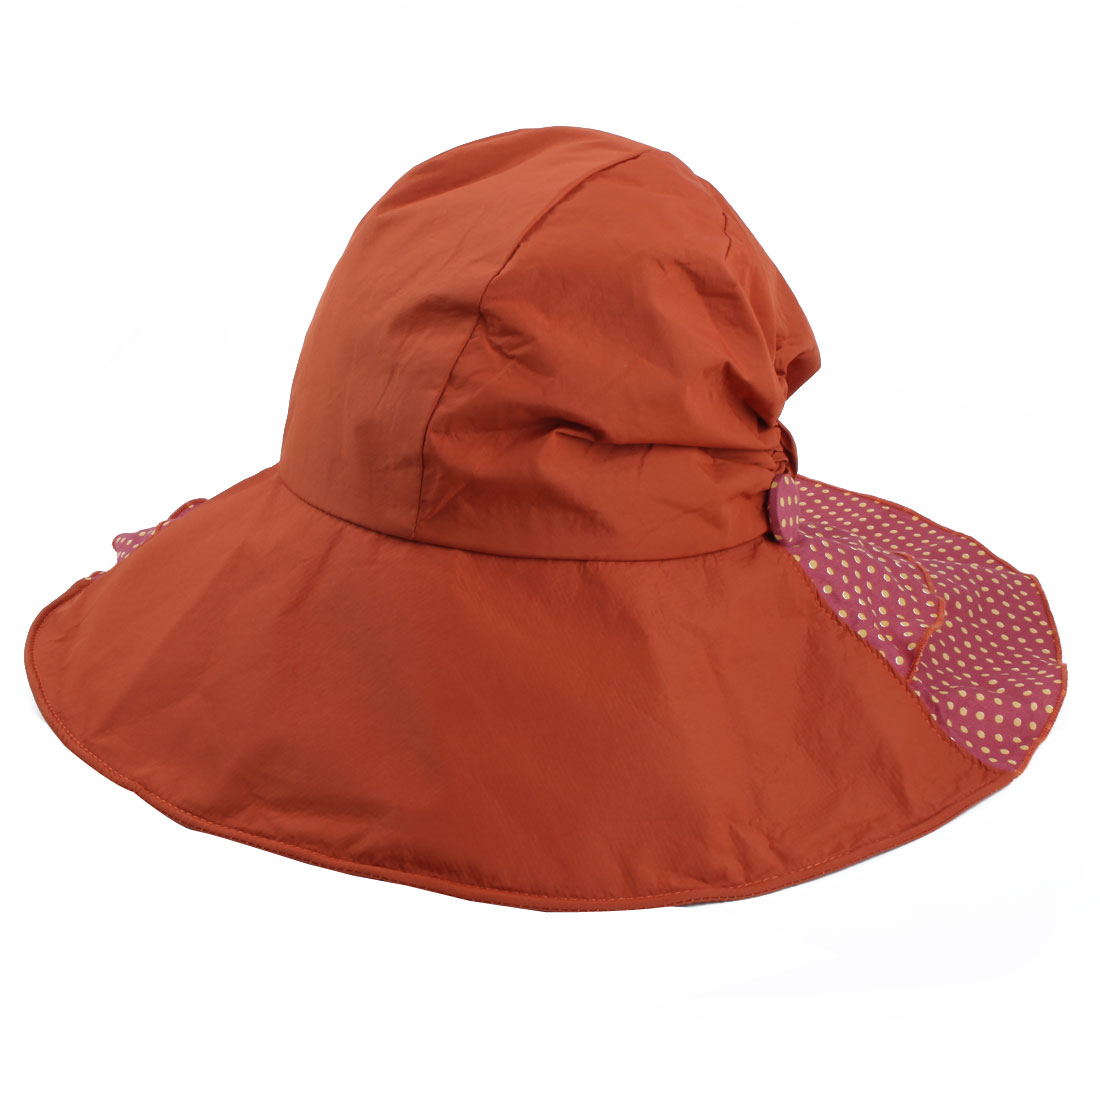 Woman Outdoor Travel Cotton Blends Dots Pattern Floppy Beach Cap Sun Visor Hat Orange